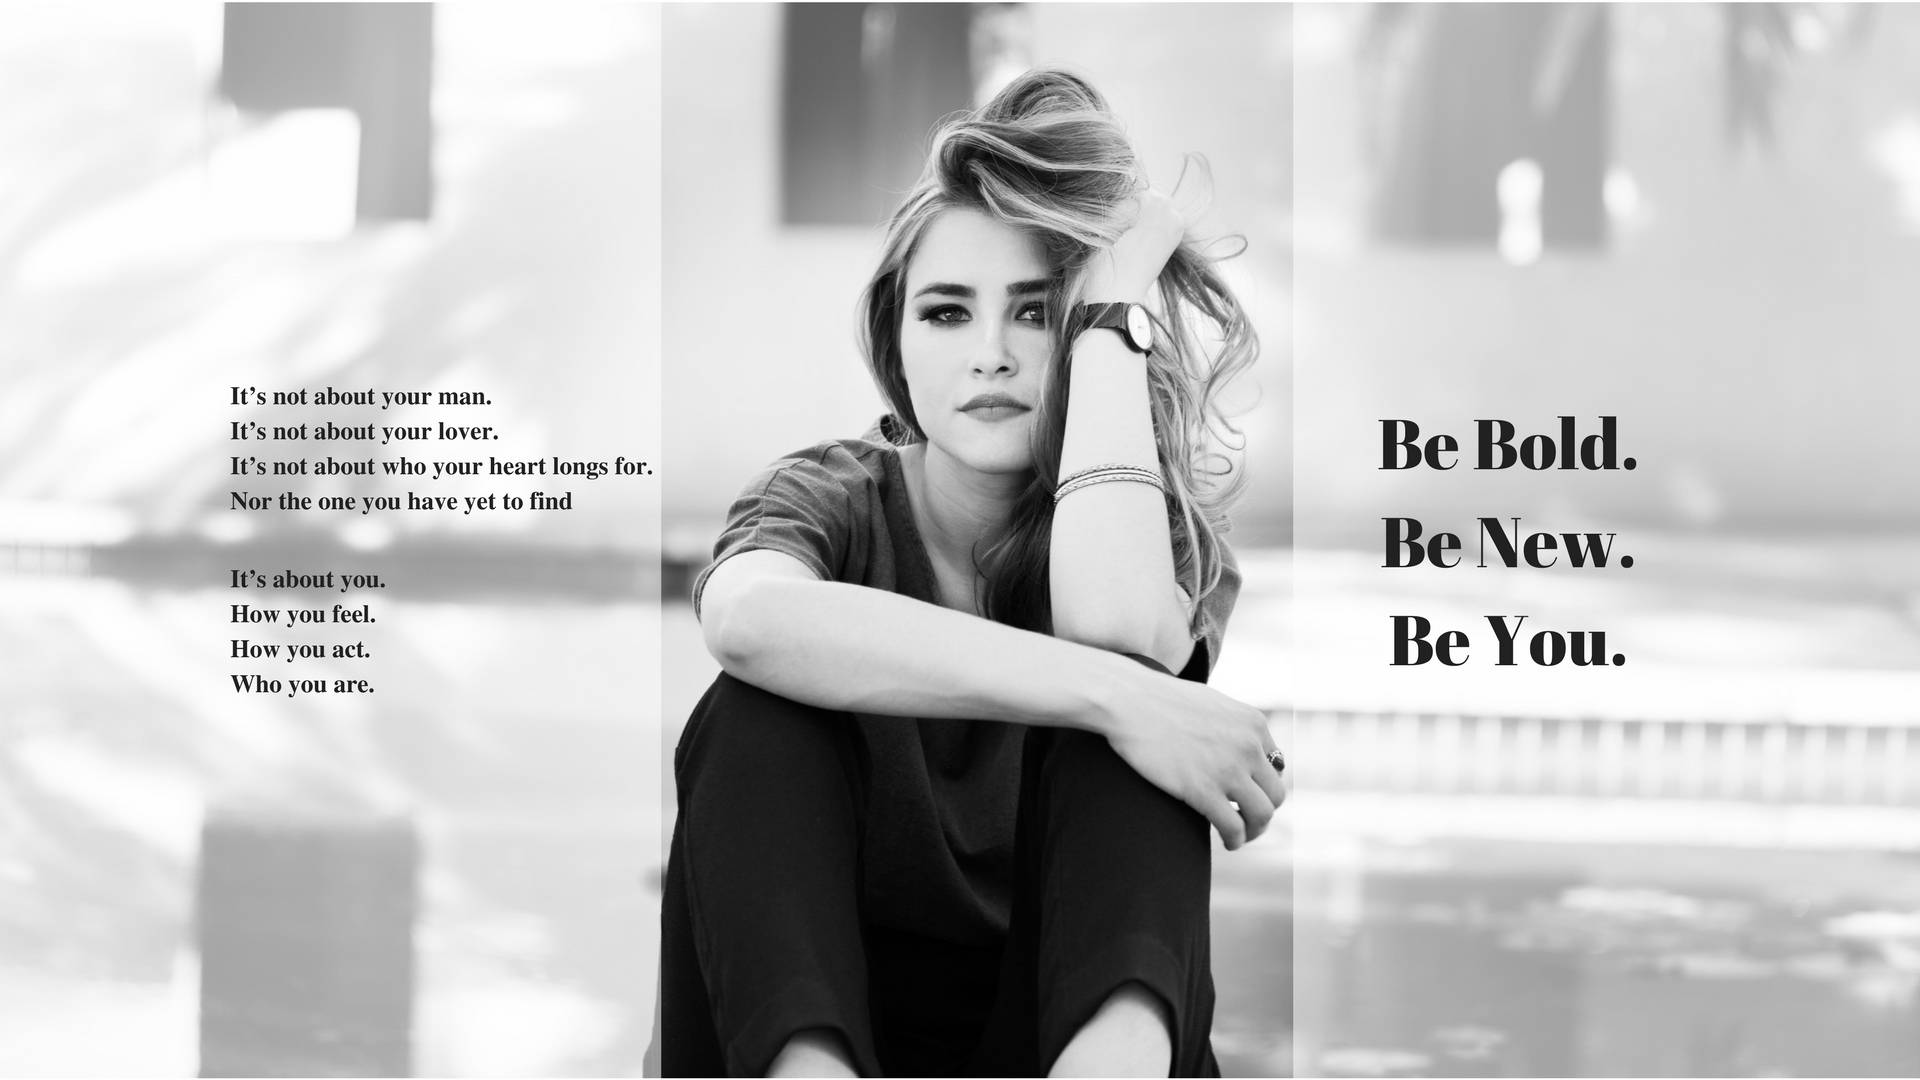 Be Bold Be New Be You